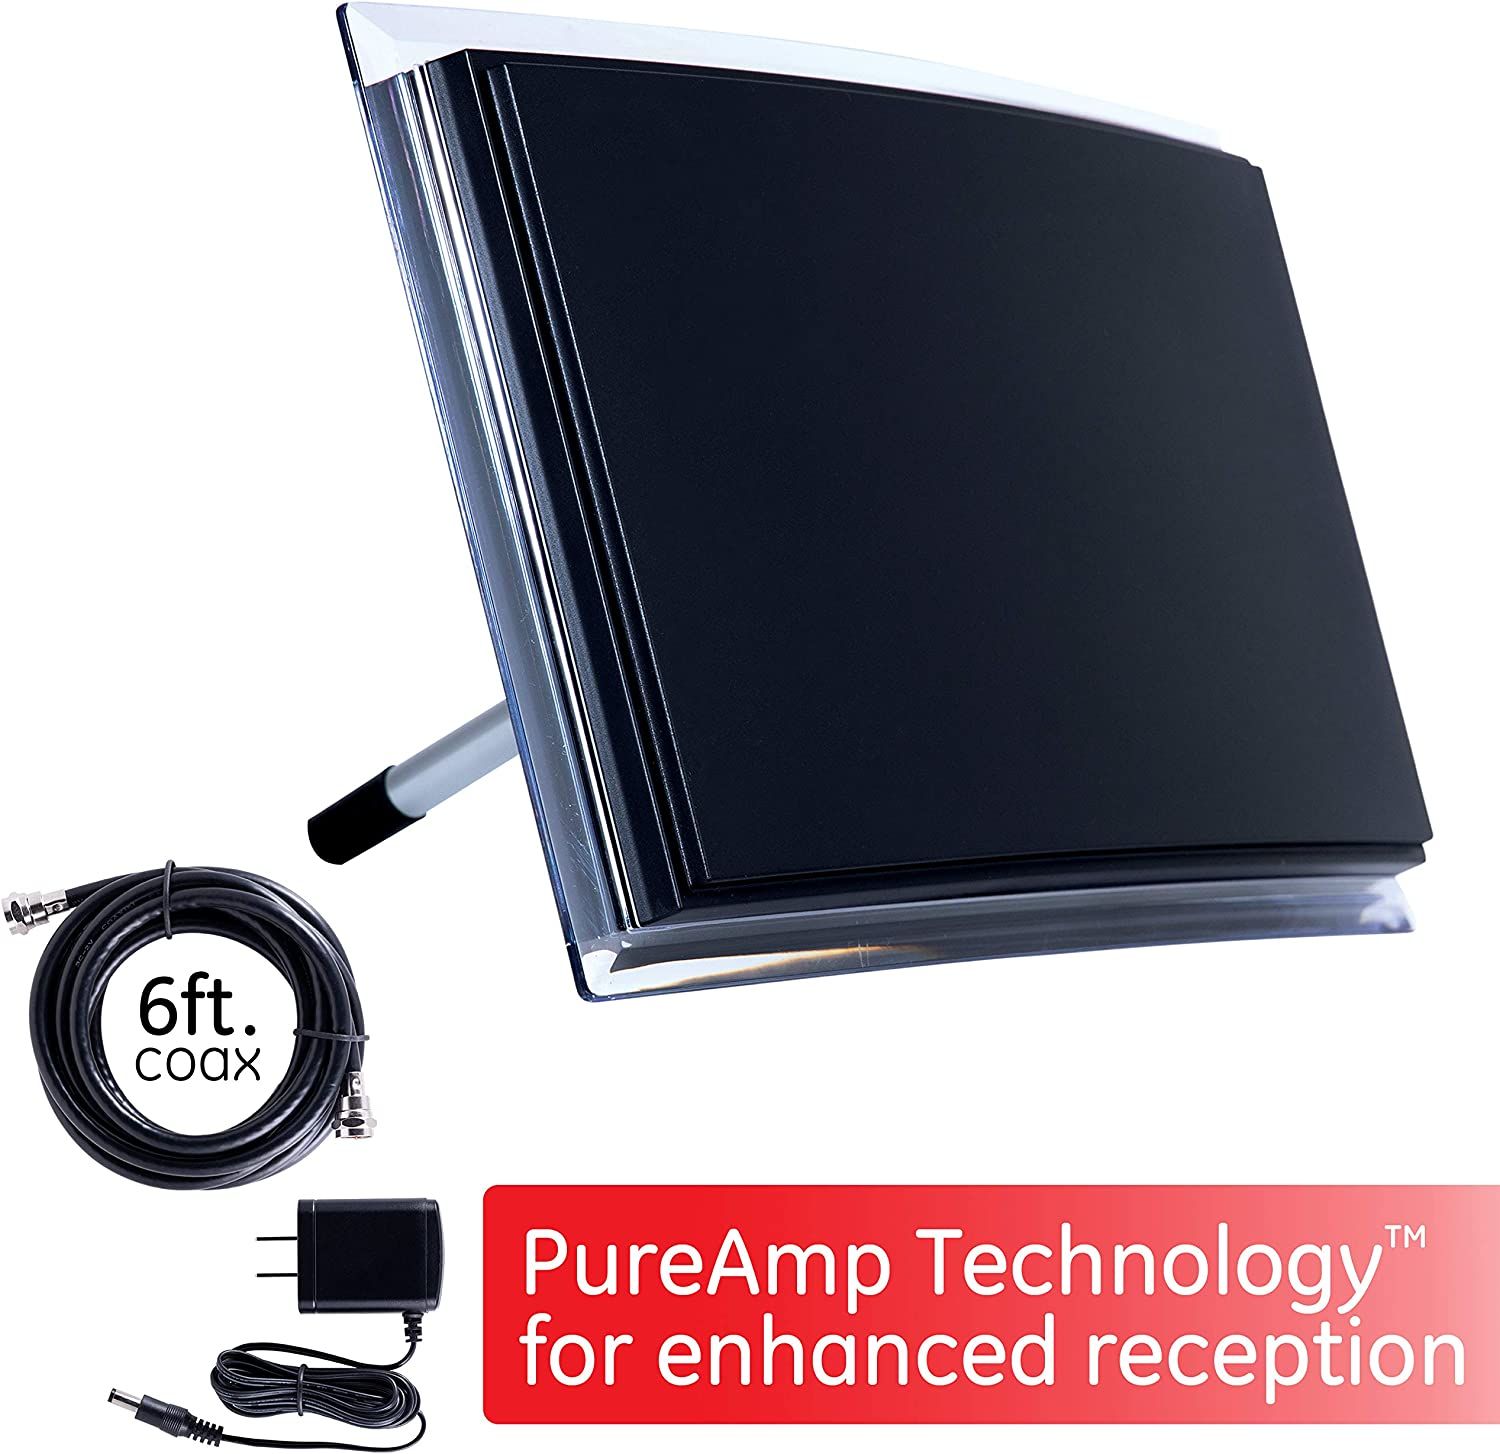 4K 1080P VHF UHF HDTV Antenna Smart TV Compatible Amplifier GE Indoor TV Antenna Digital 6Ft Coaxial Cable Perfect Home D/écor 34134 Signal Booster Amplified Long Range HD Antenna